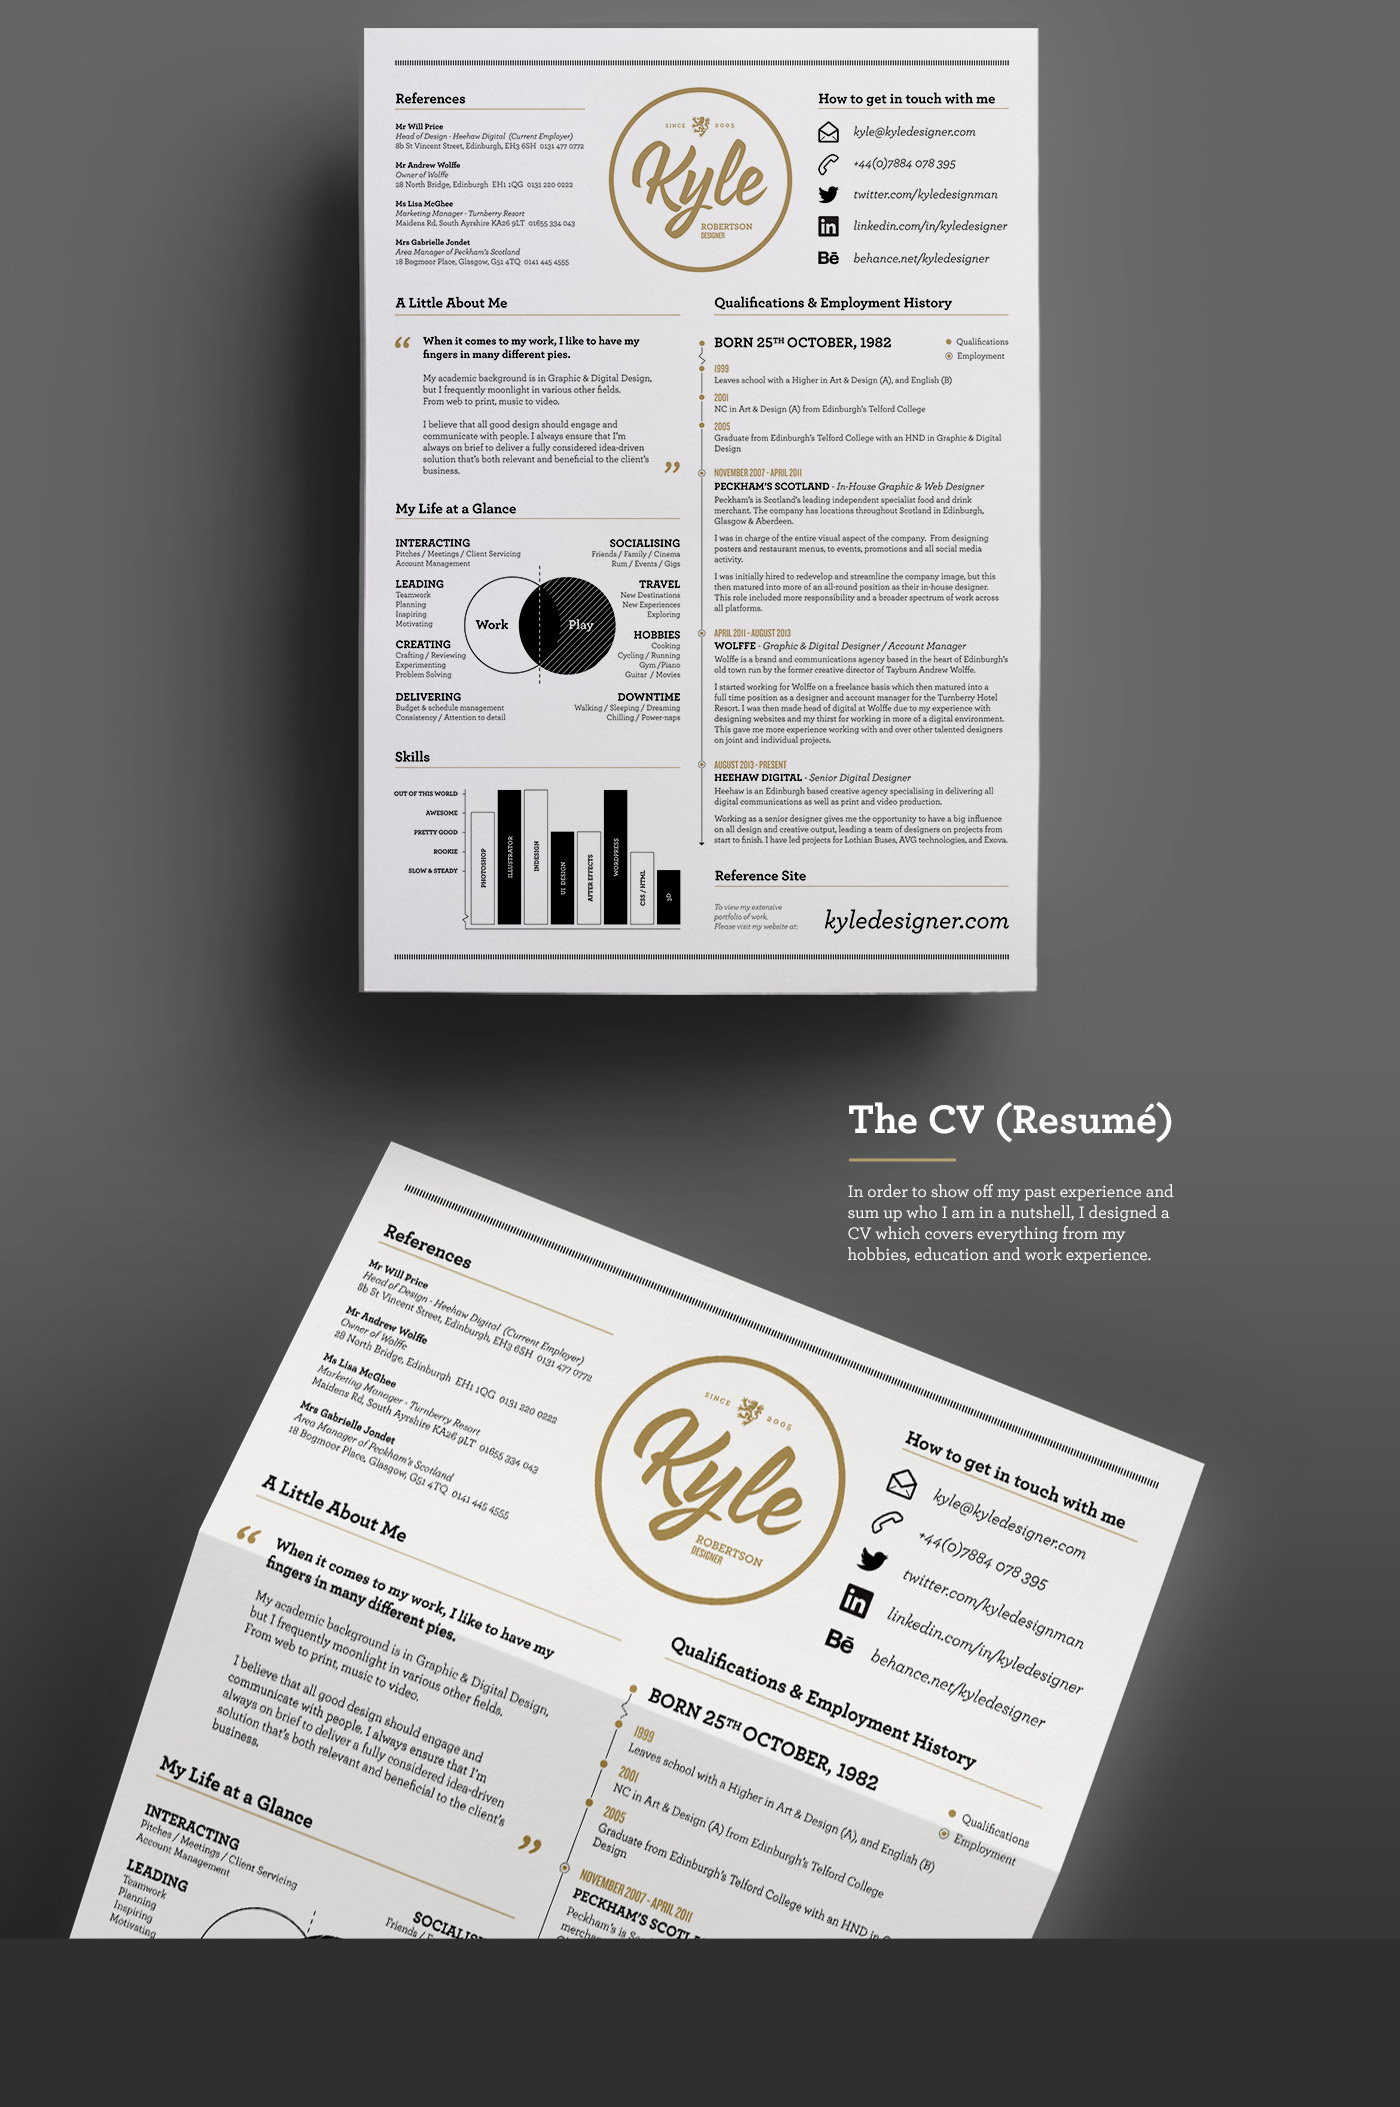 Resume by Kyle Robertson